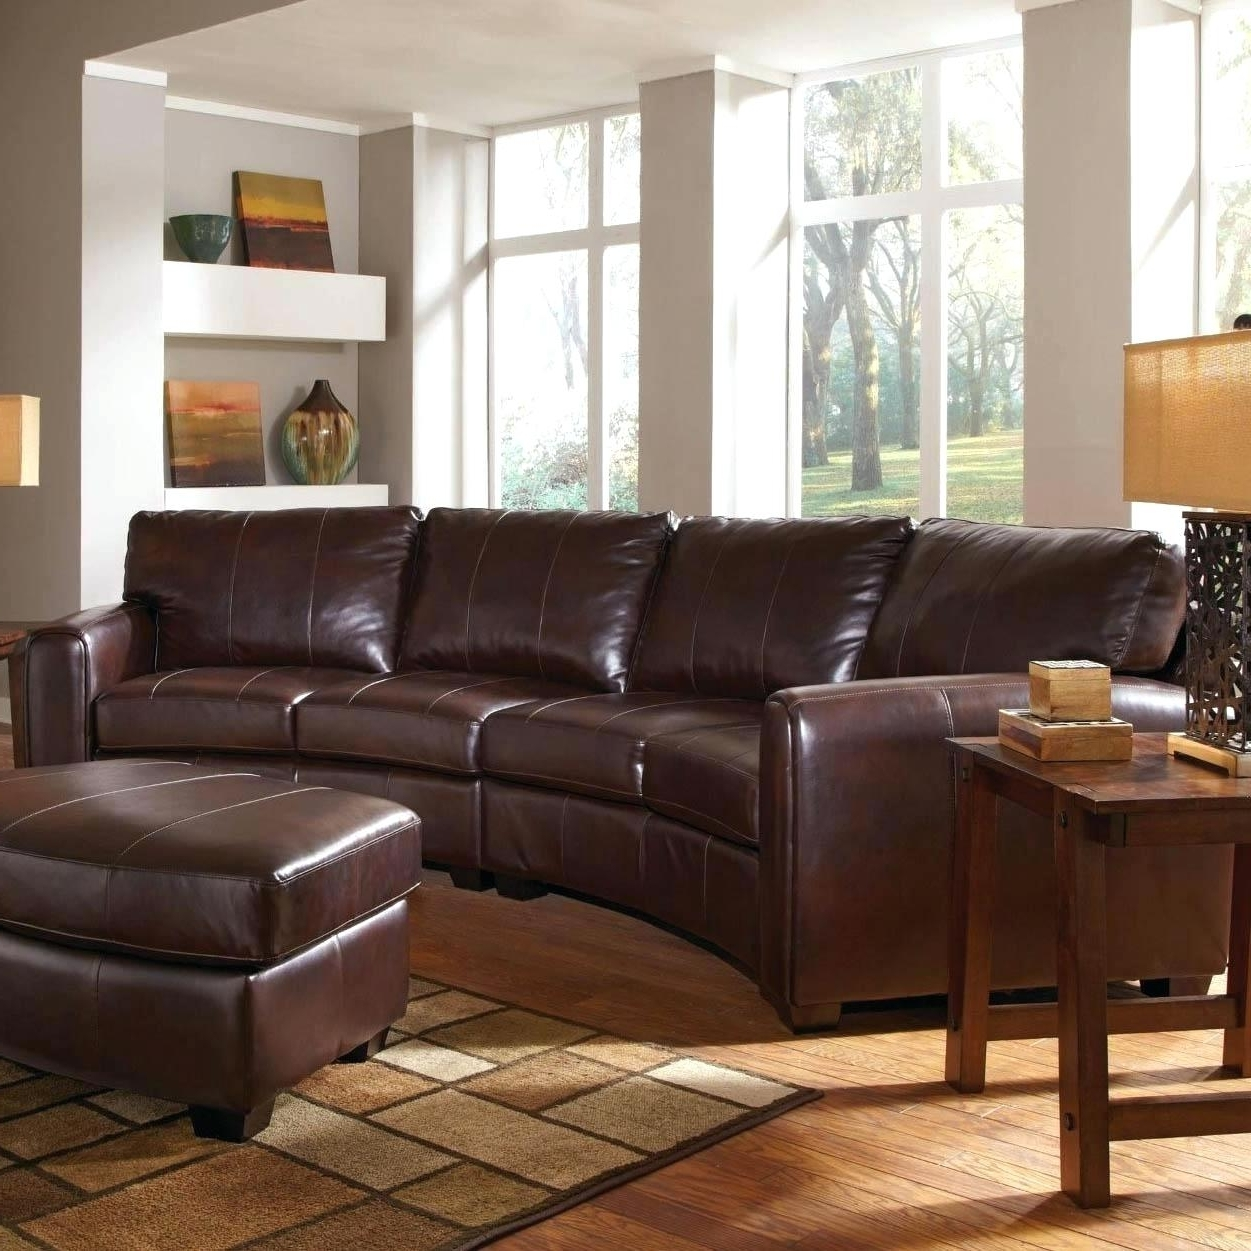 Sectional Sofas At Atlanta With Newest Sectional Sofas Atlanta – Ncgeconference (View 20 of 20)